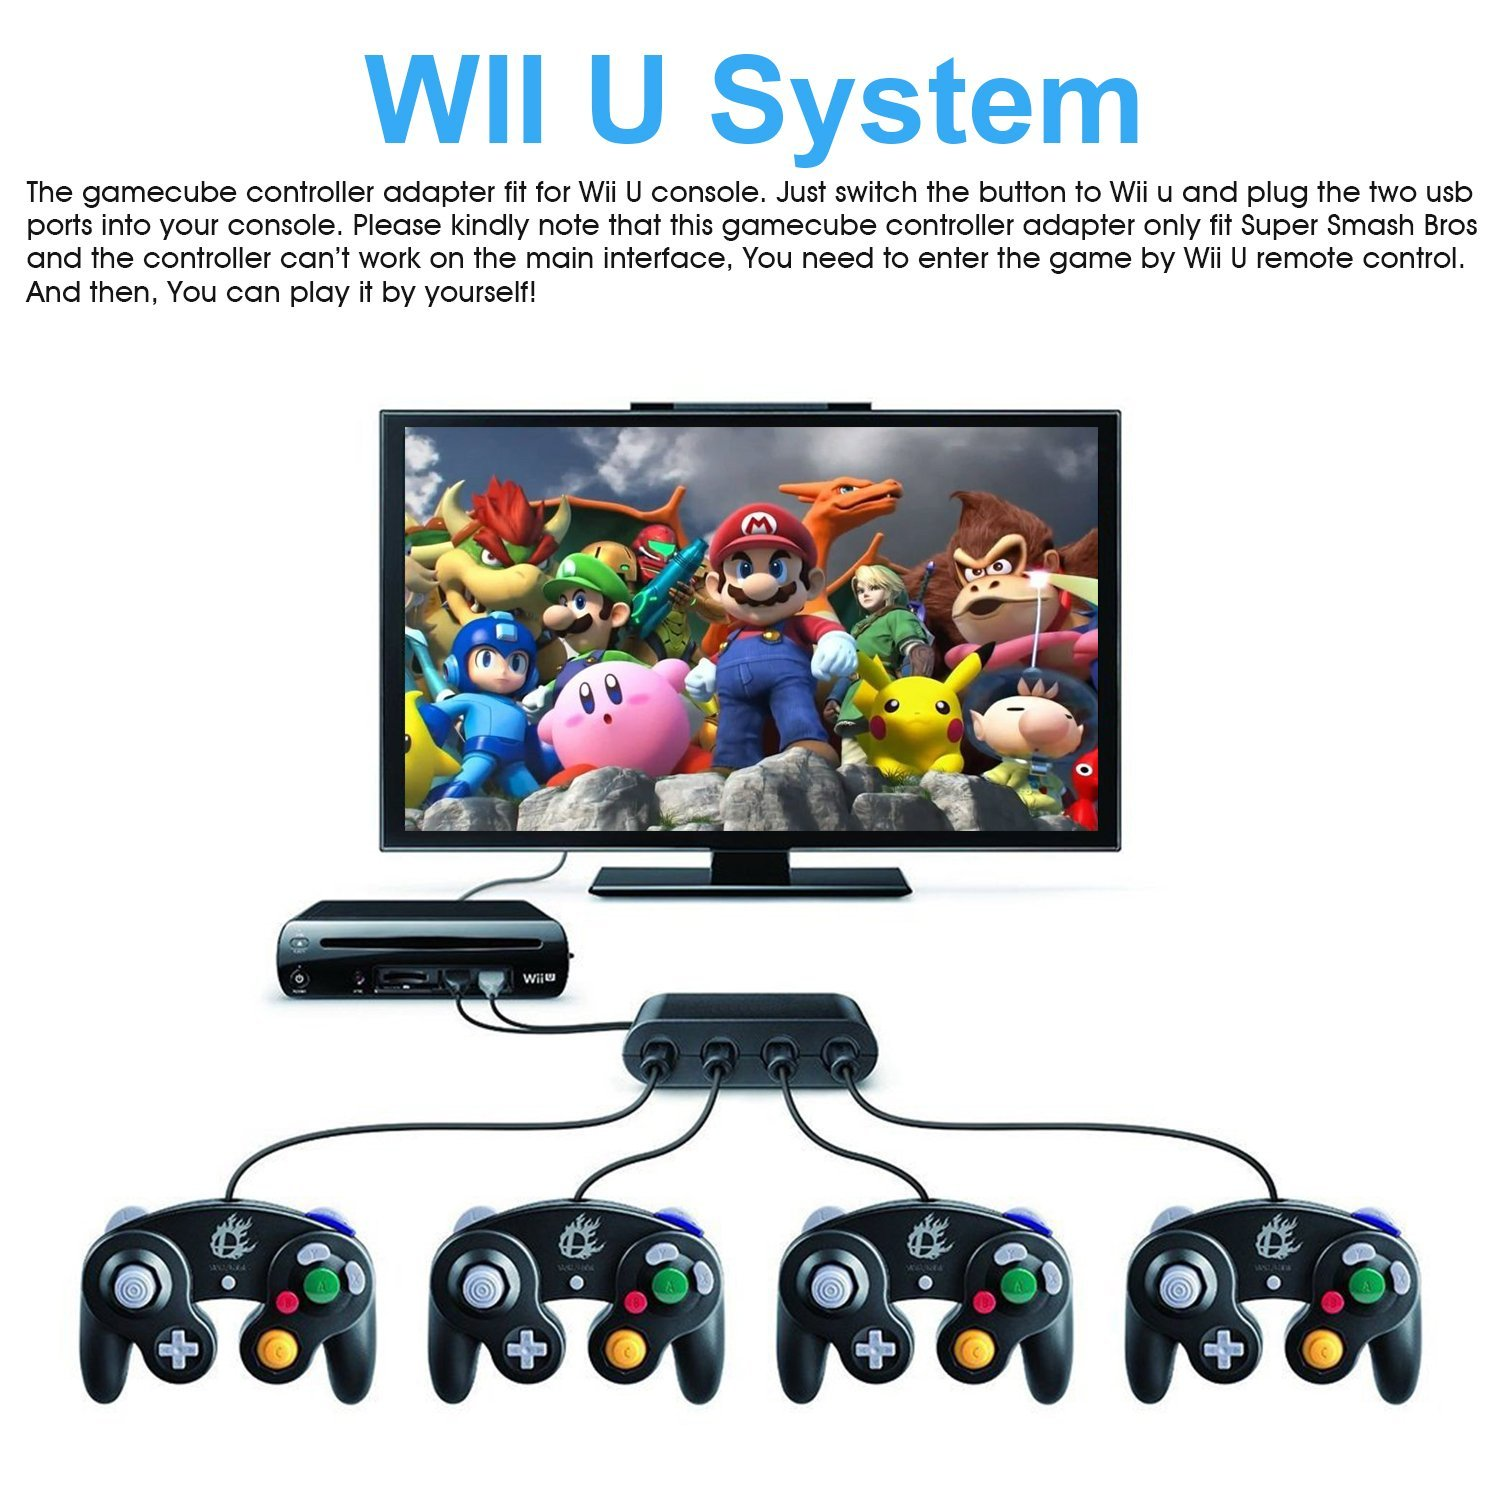 Details about 2 GameCube USB controller + 1 Adapter for Super Smash Bros  Nintendo Wii U & PC